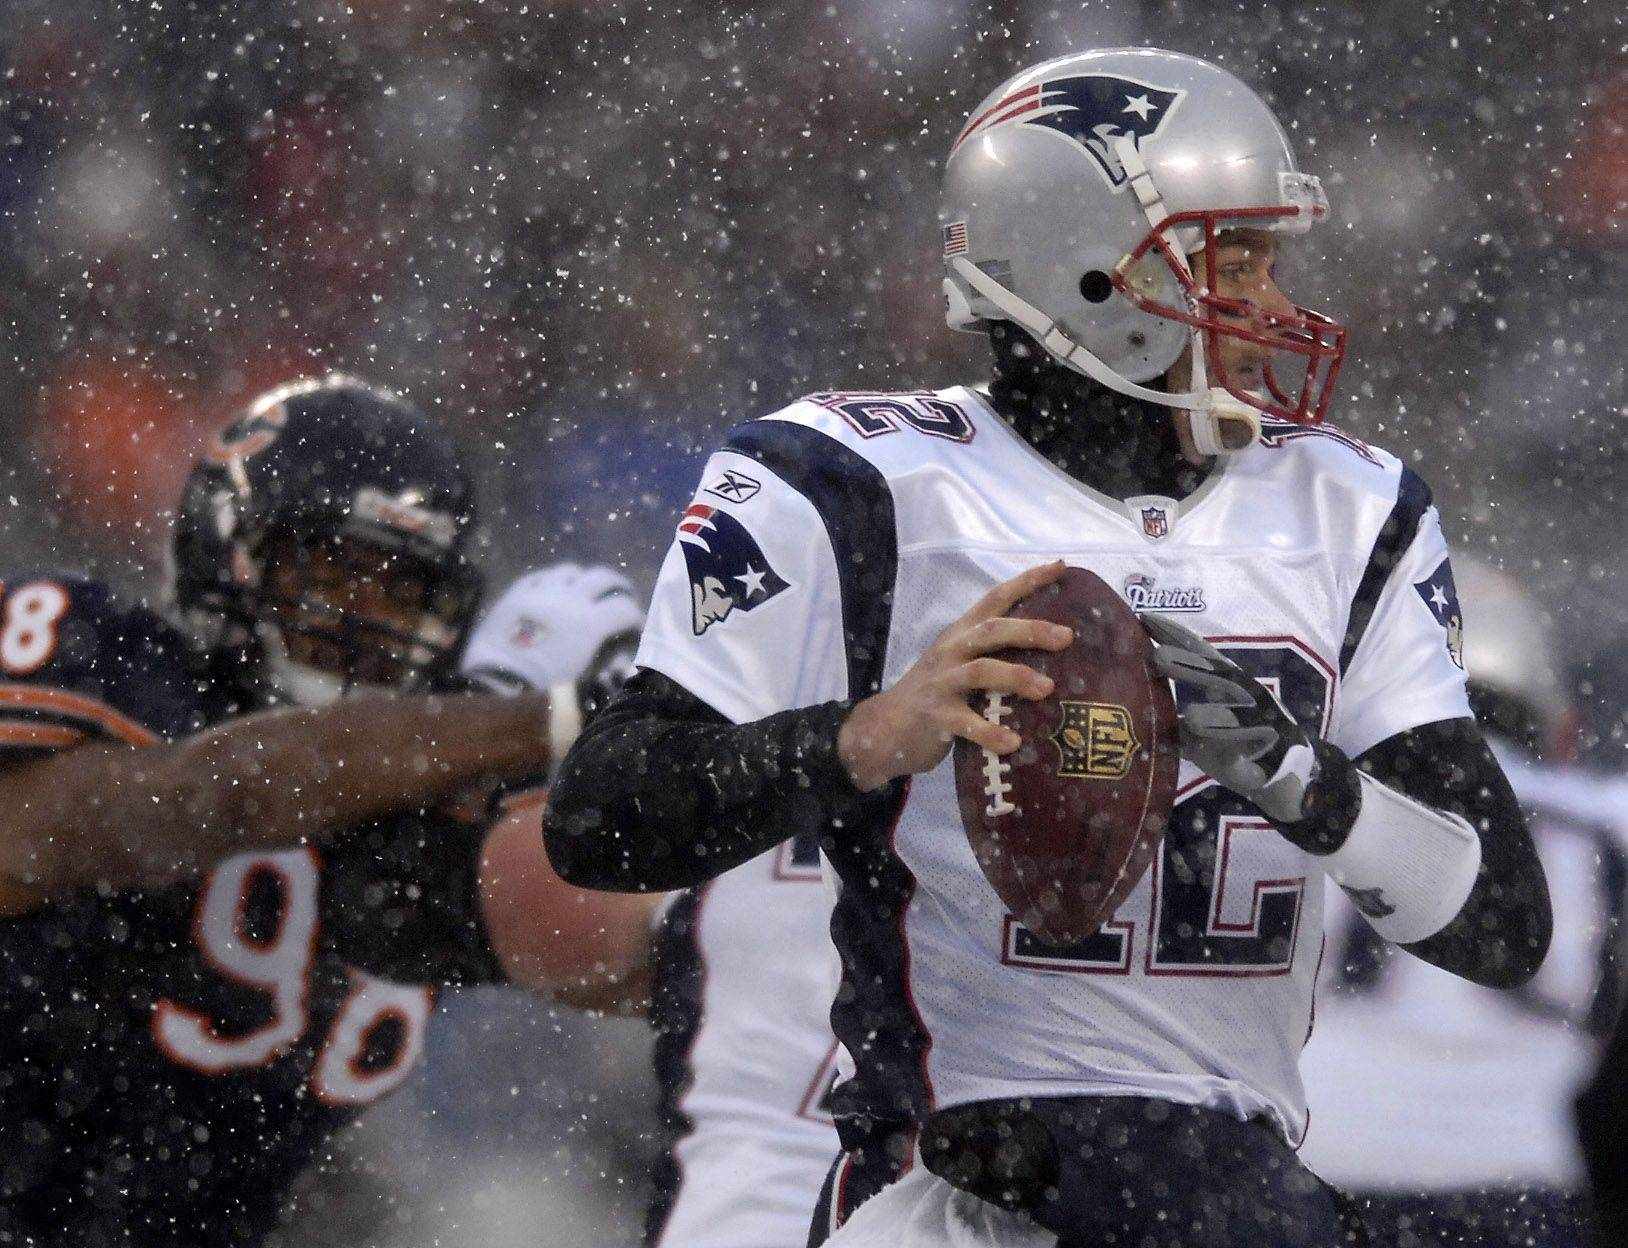 New England Patriots quarterback Tom Brady looks to pass.